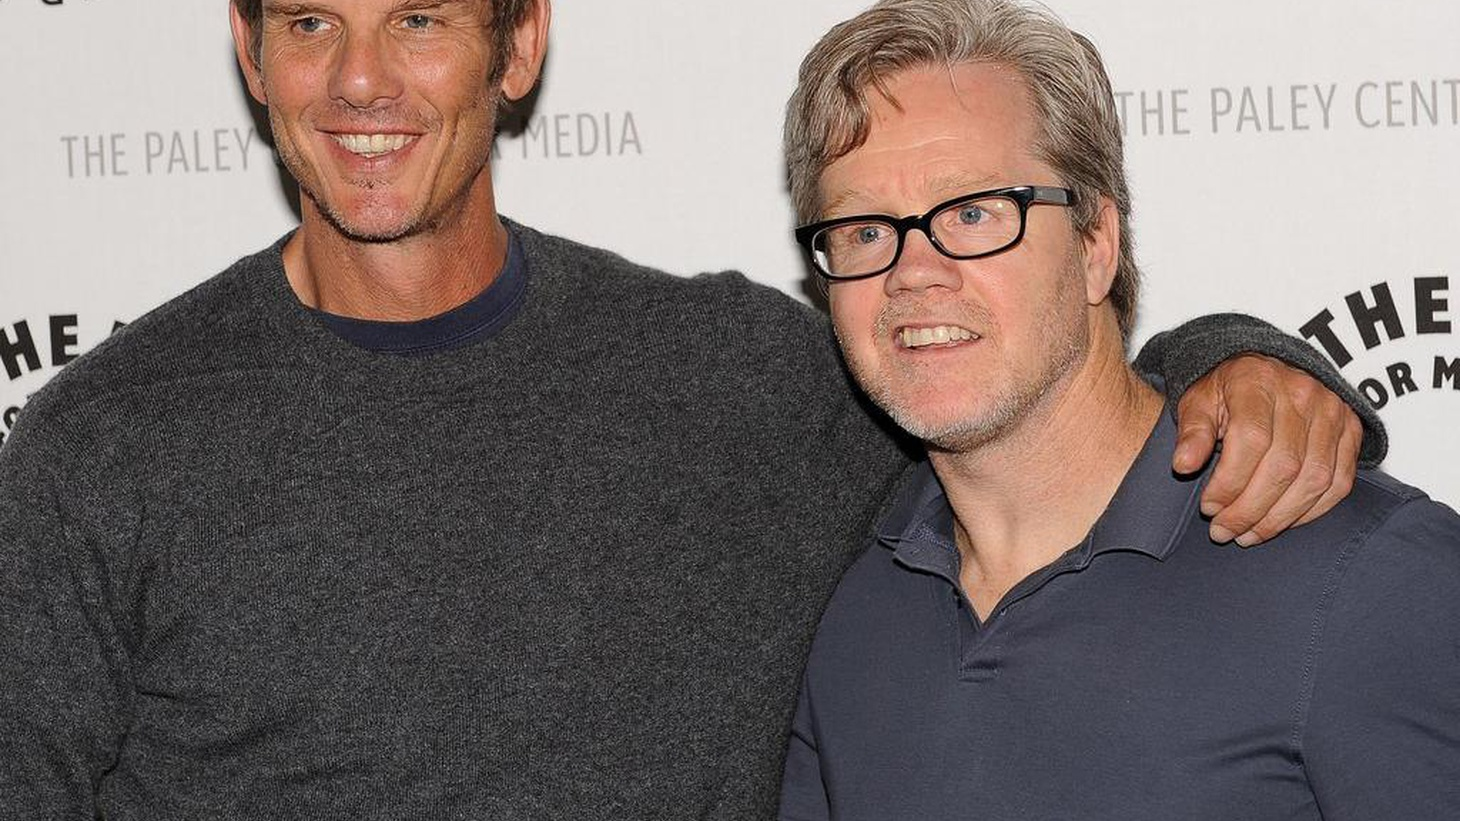 Peter Berg talks the battle of 'Battleship' and his passion project, 'On Freddie Roach.'